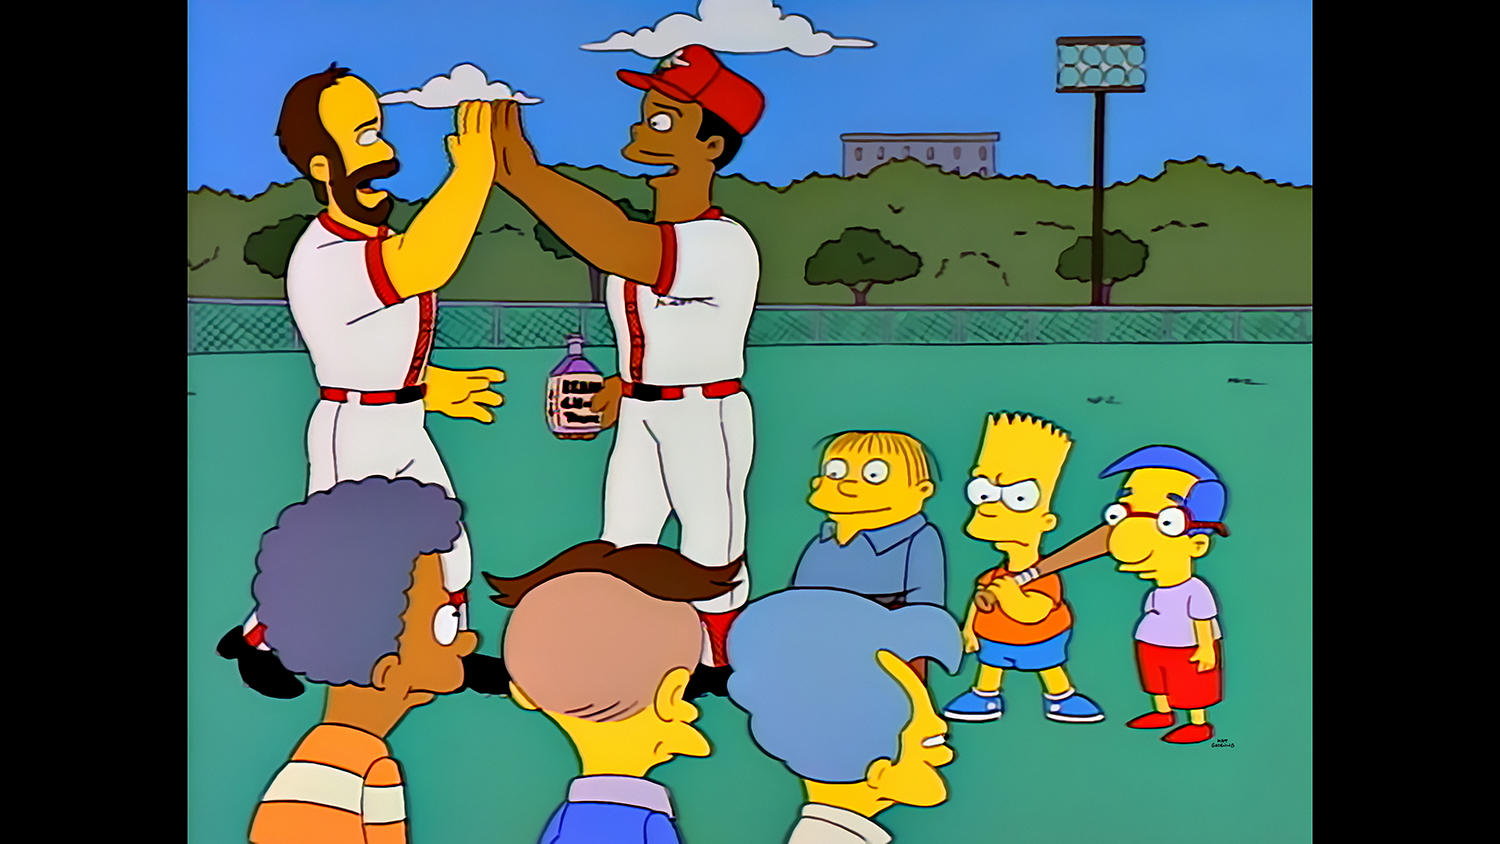 "Hall of Famers Wade Boggs (left) and Ken Griffey Jr. were among the baseball players featured in THE SIMPSONS ""Homer at the Bat"" episode. Boggs will participate in THE SIMPSONS roundtable discussion at this year's Hall of Fame Classic. (Photo Courtesy of FOX)"